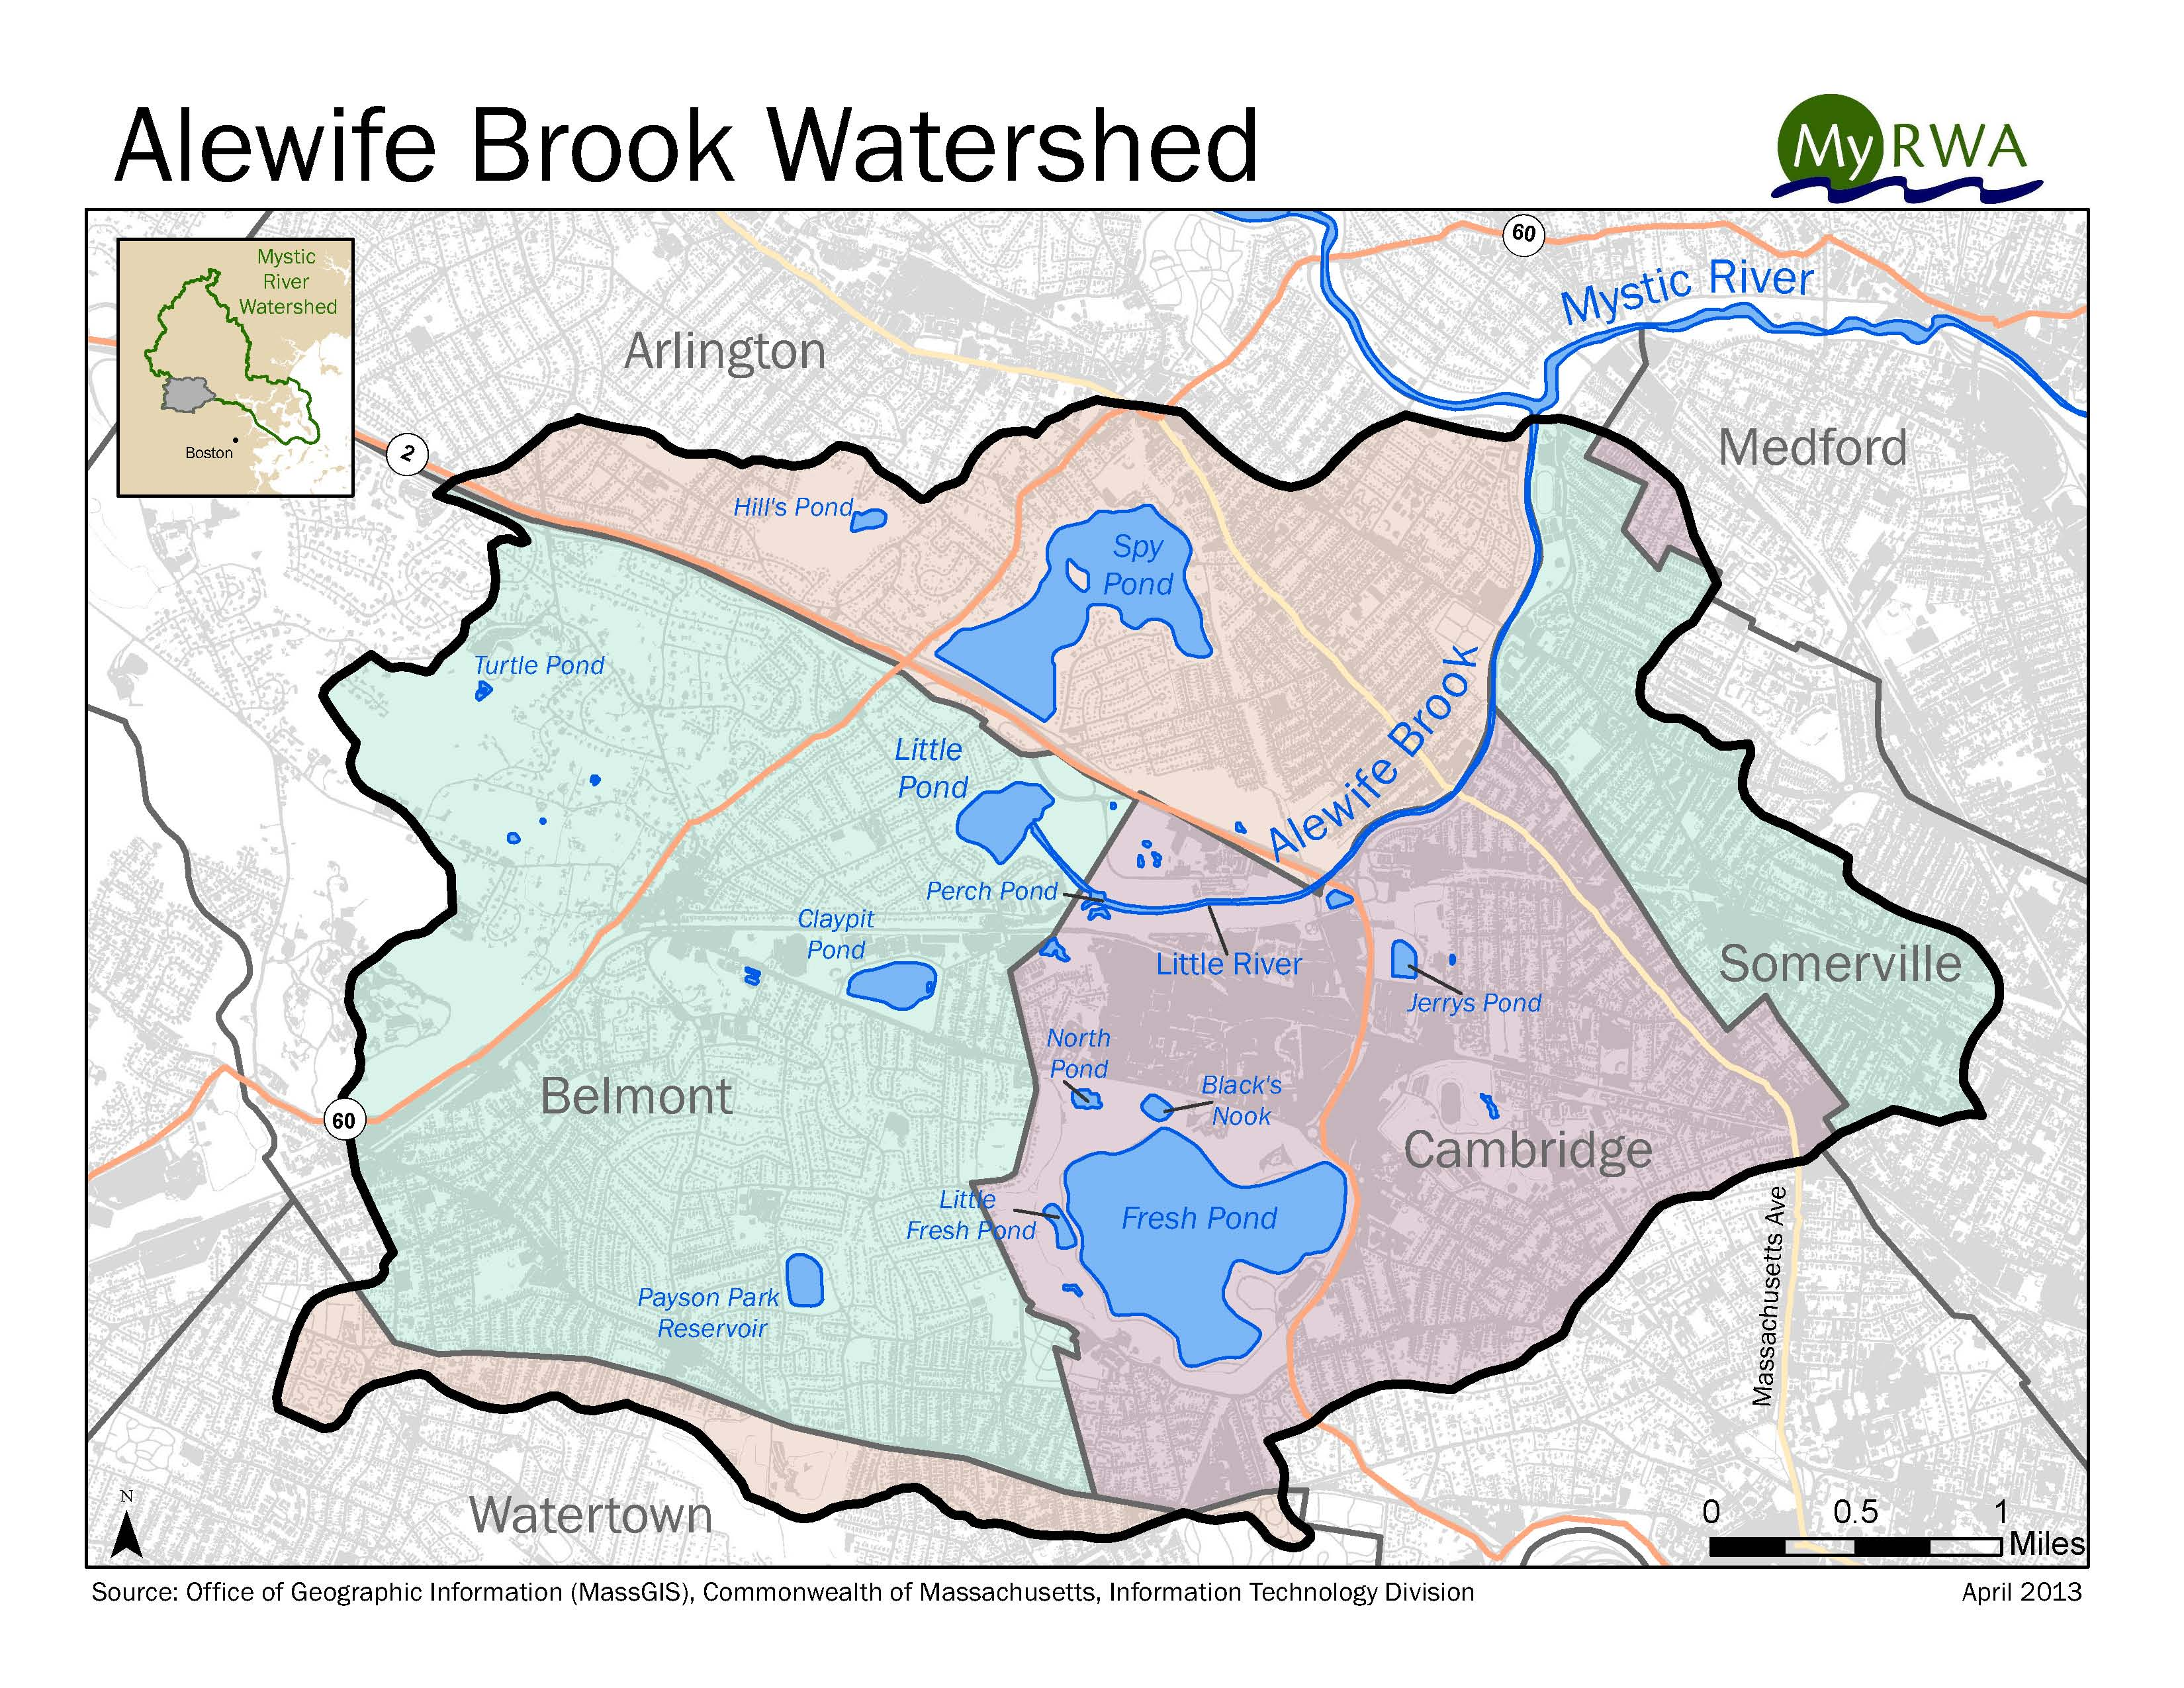 map of Alewife Brook Watershed